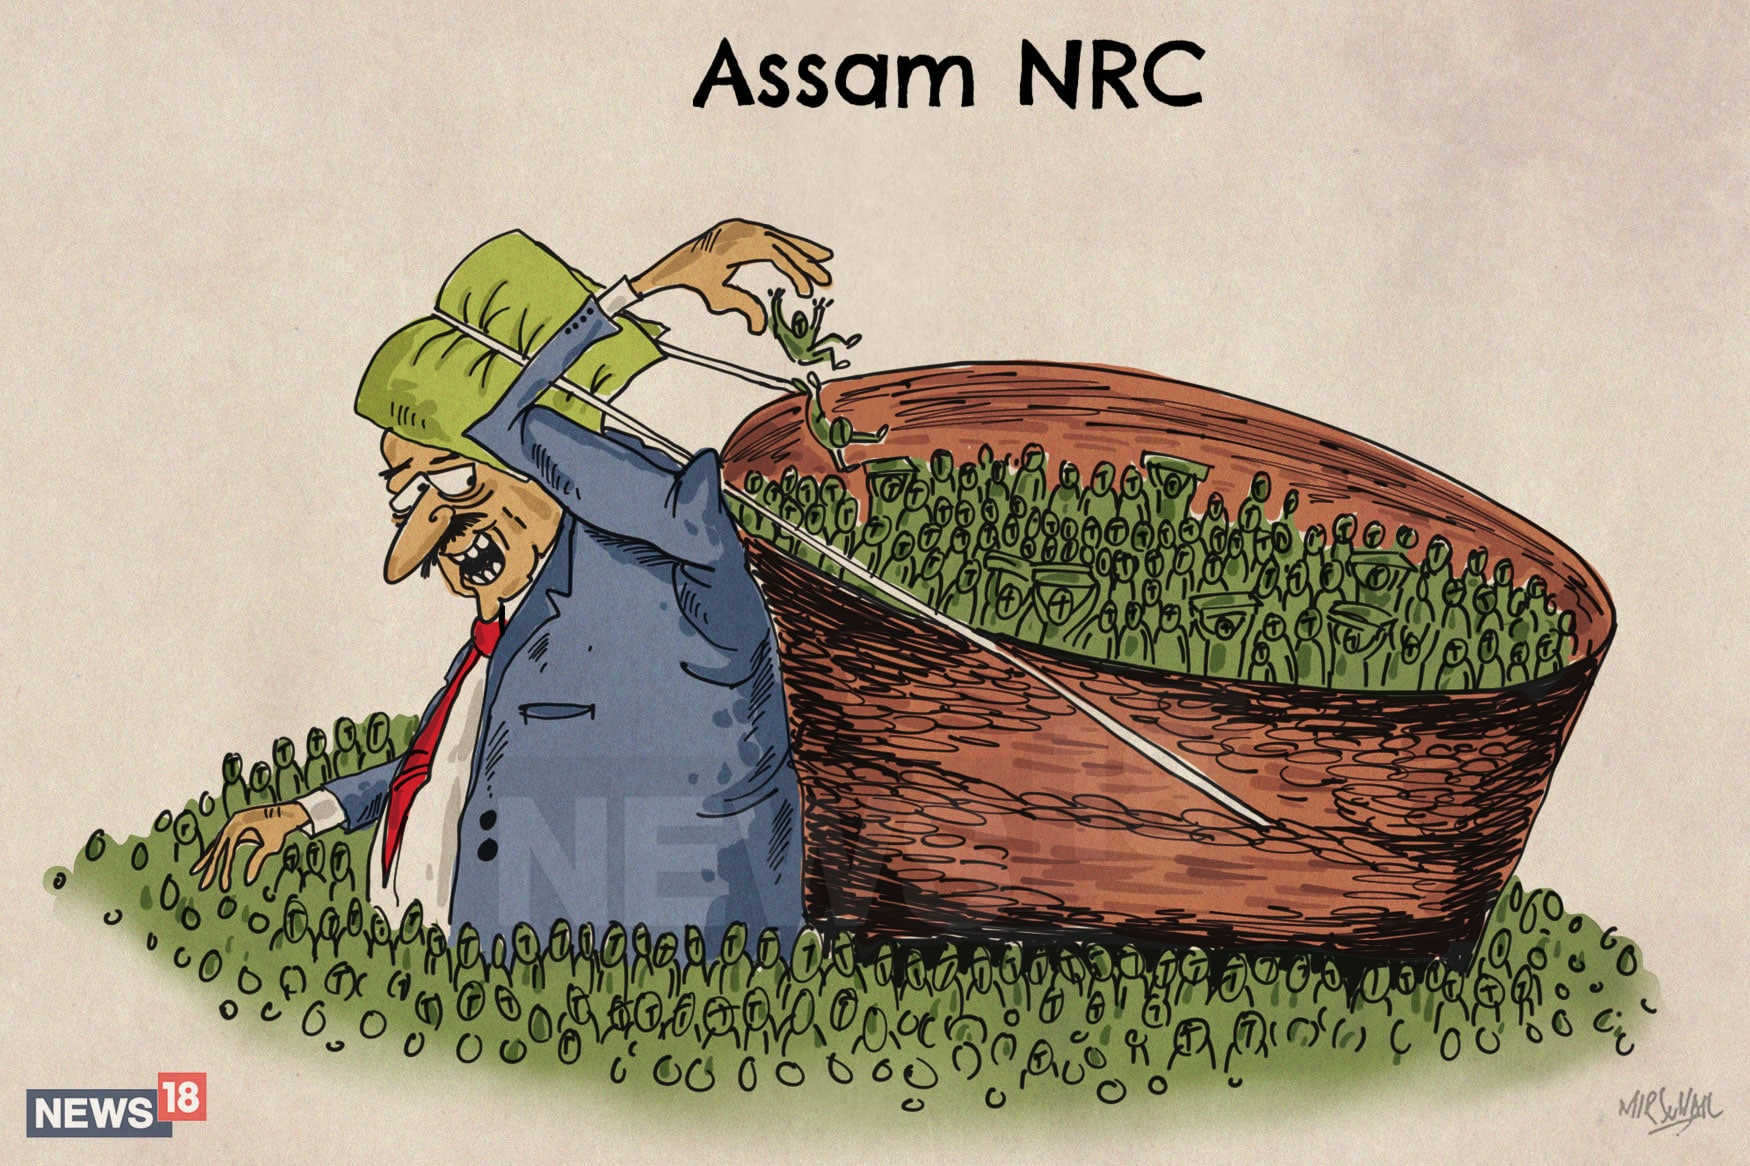 Assam-NRC-cartoon (1)